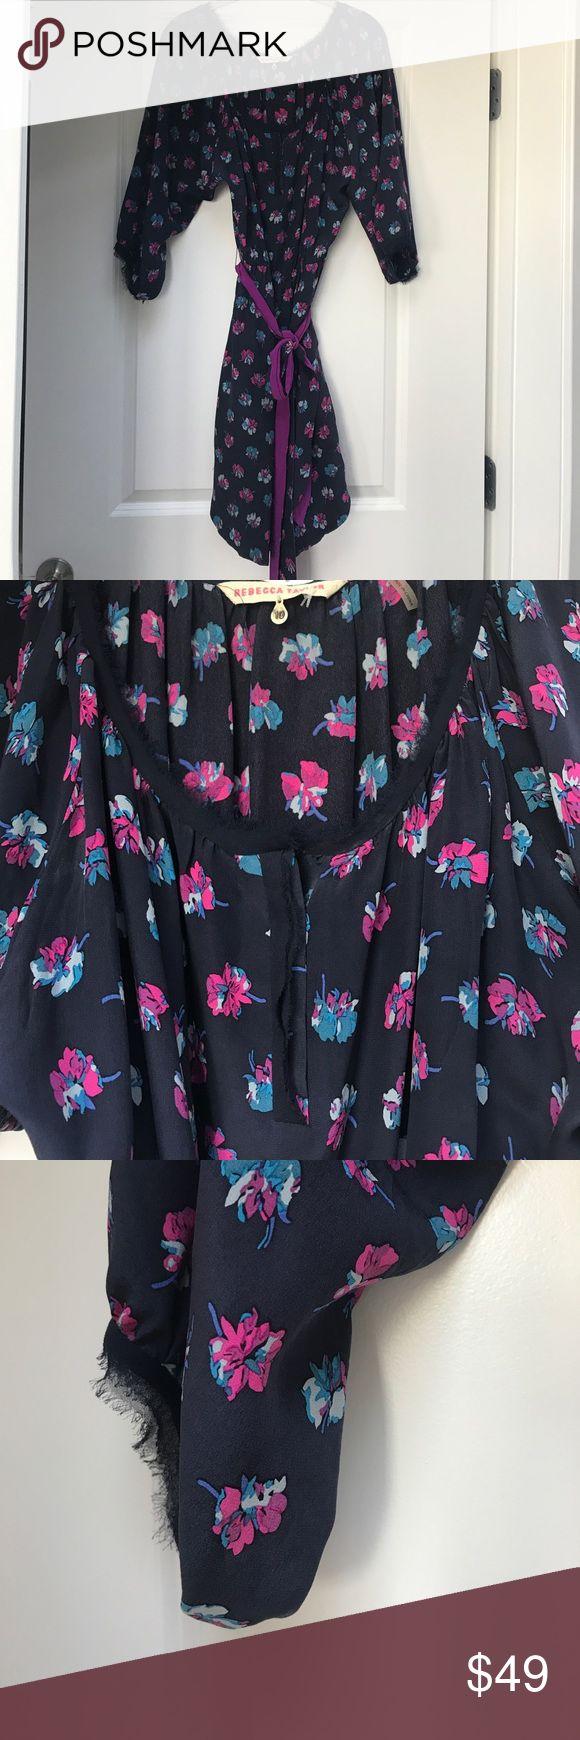 Rebecca Taylor flower patterned dress w tie belt Navy blue with floral pattern. can be worn with or without tie belt. 3/4 sleeves. Size 10 Rebecca Taylor Dresses Long Sleeve